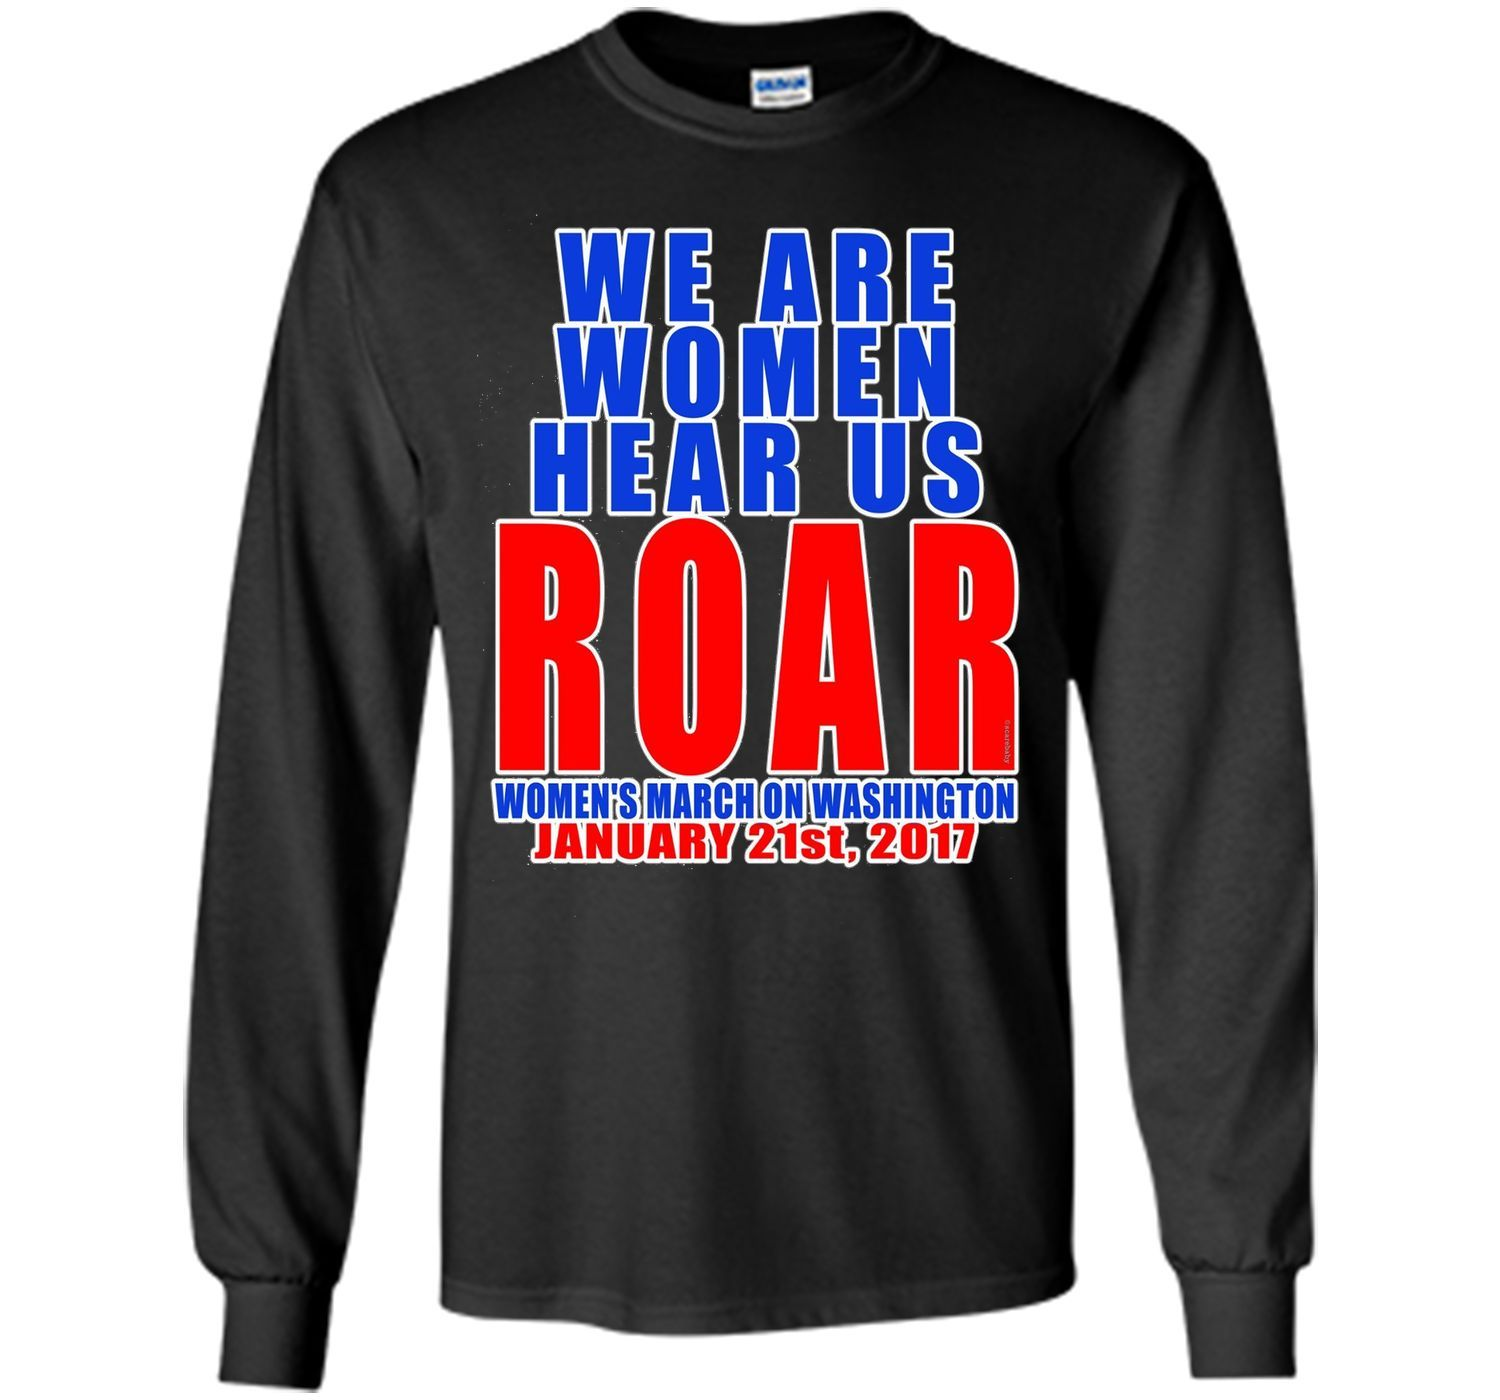 We Are WOMEN Hear Us ROAR Tshirt